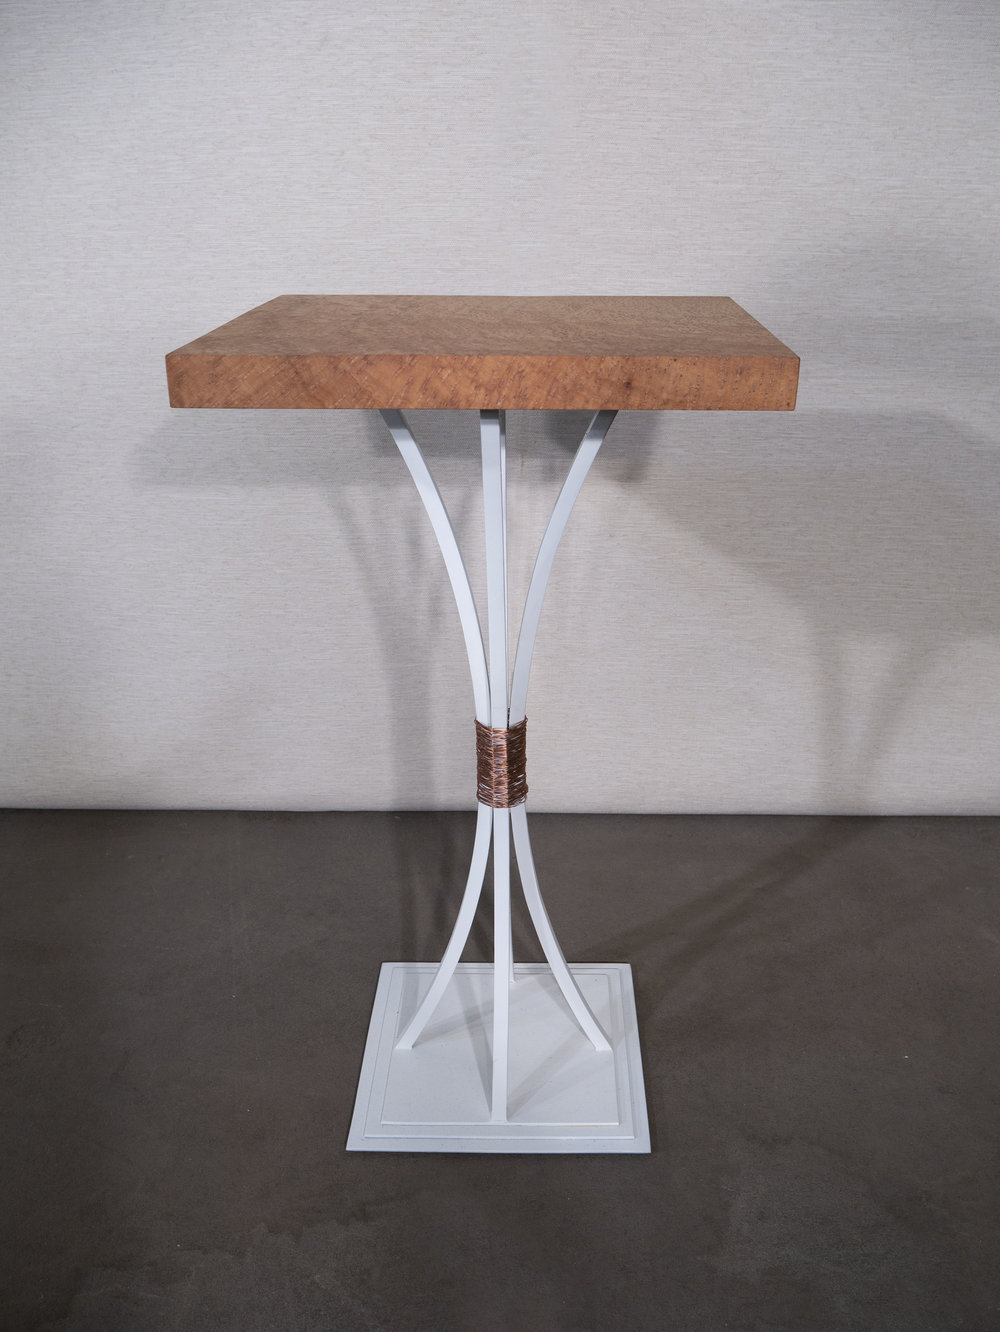 The Crescent End Table